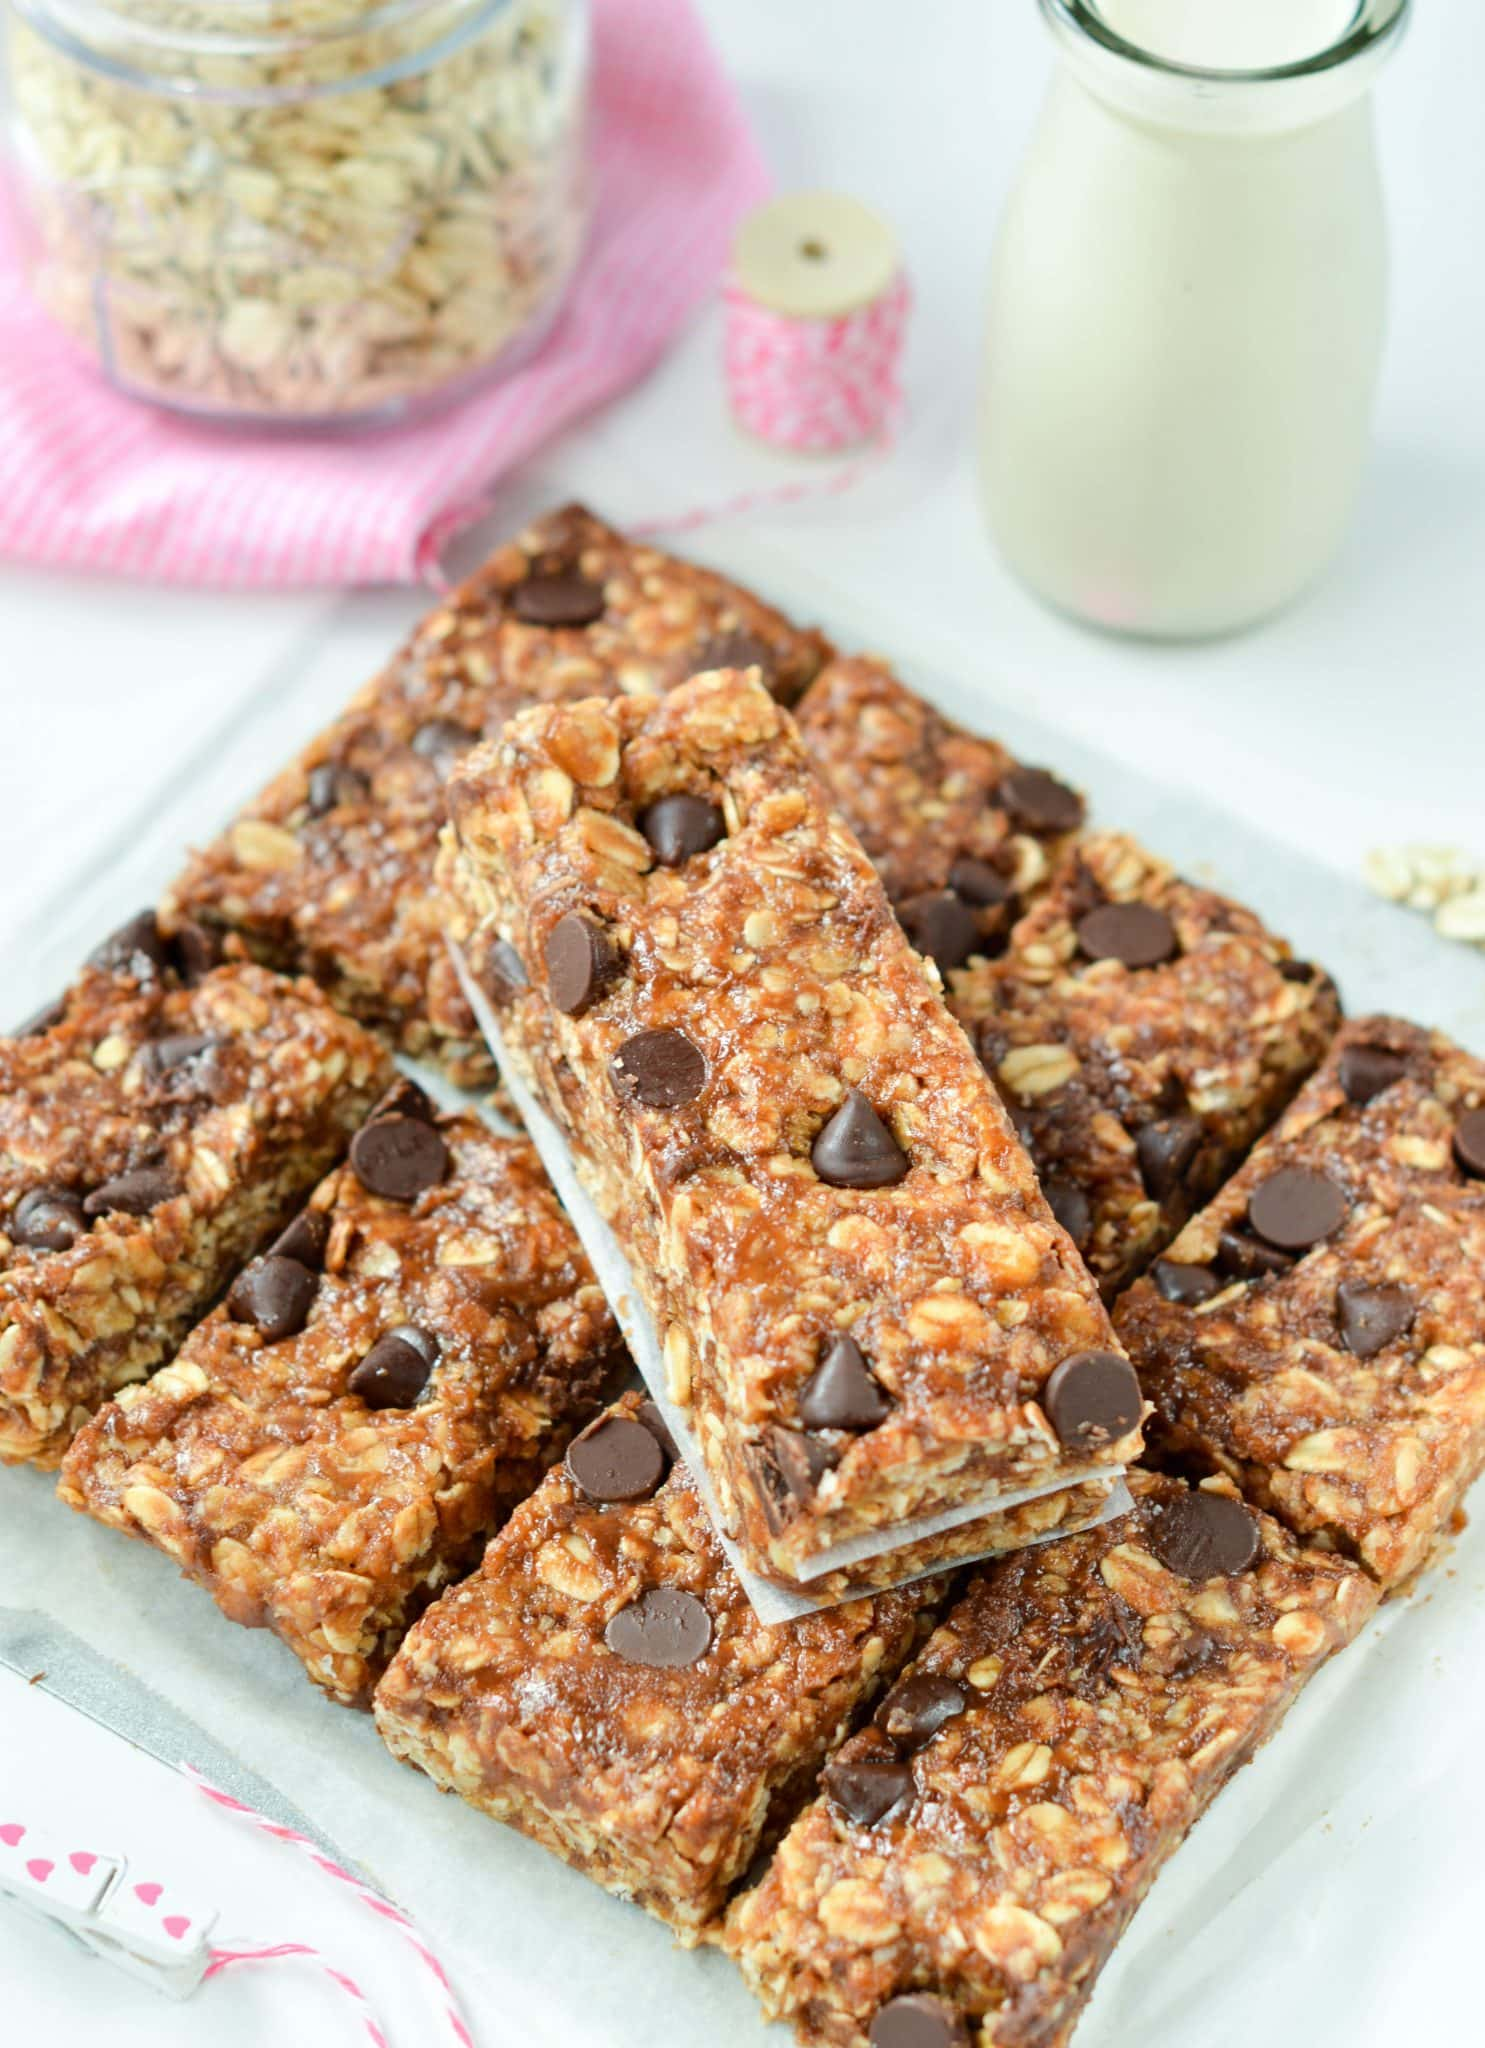 No Bake Peanut Butter Oatmeal Protein Bars